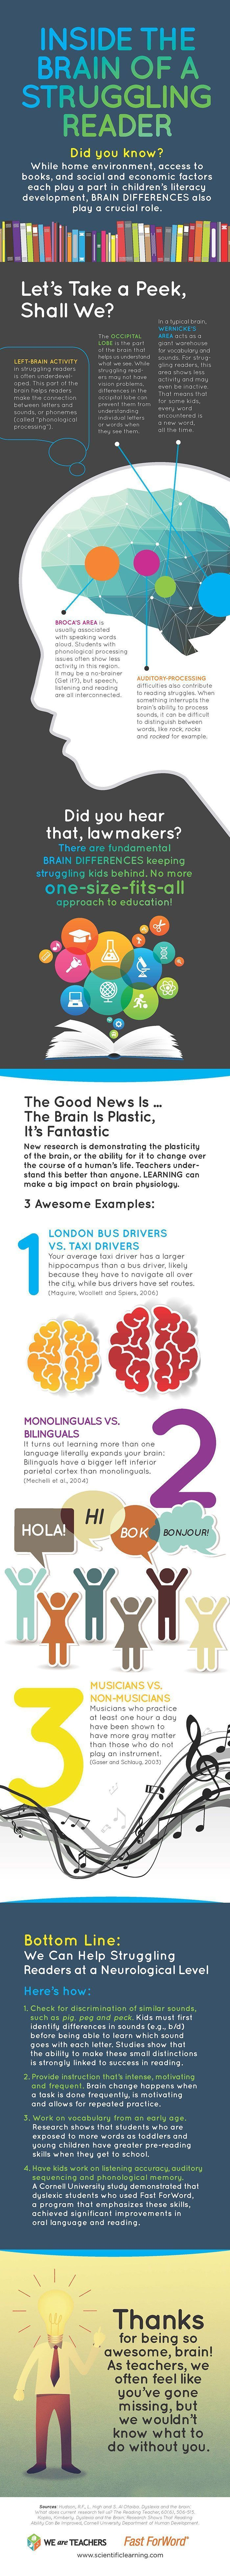 how a struggling reader's brain works differently {infographic}